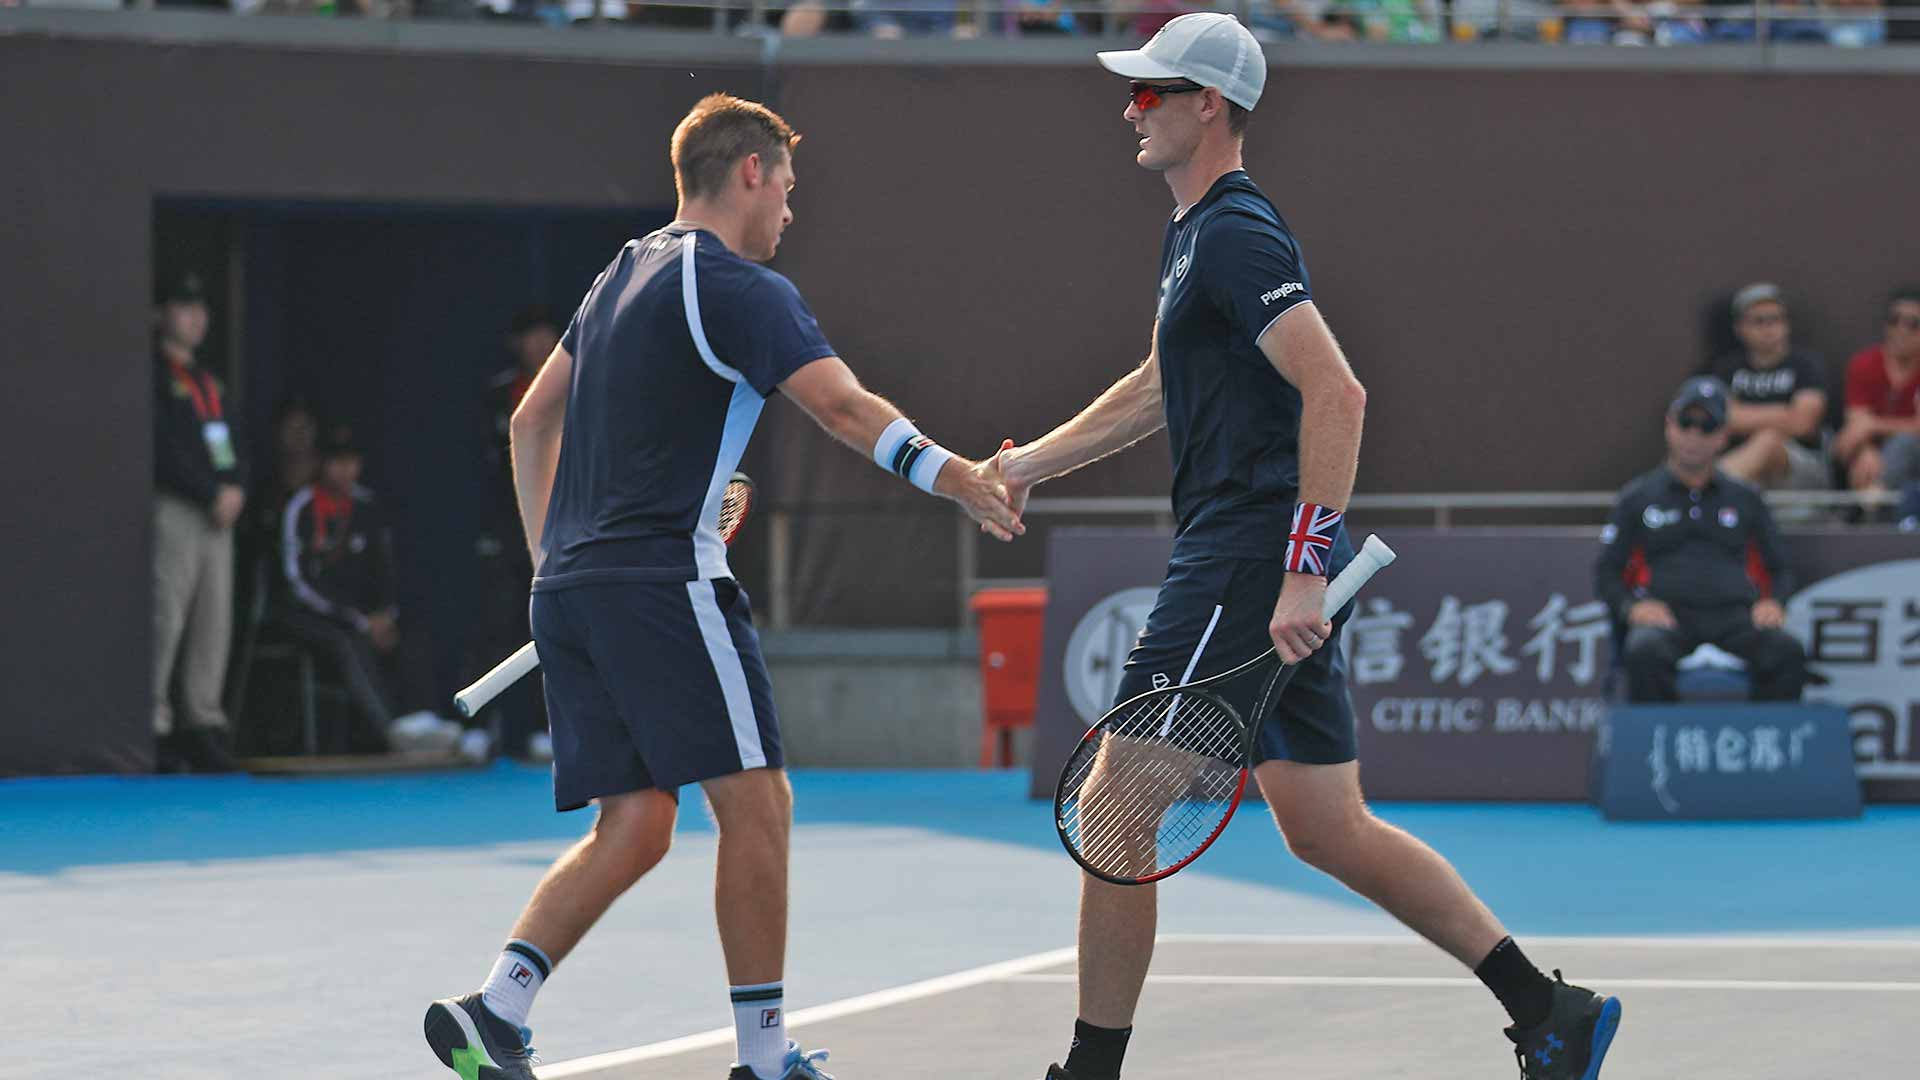 Neal Skupski/Jamie Murray advance on Wednesday at the China Open in Beijing